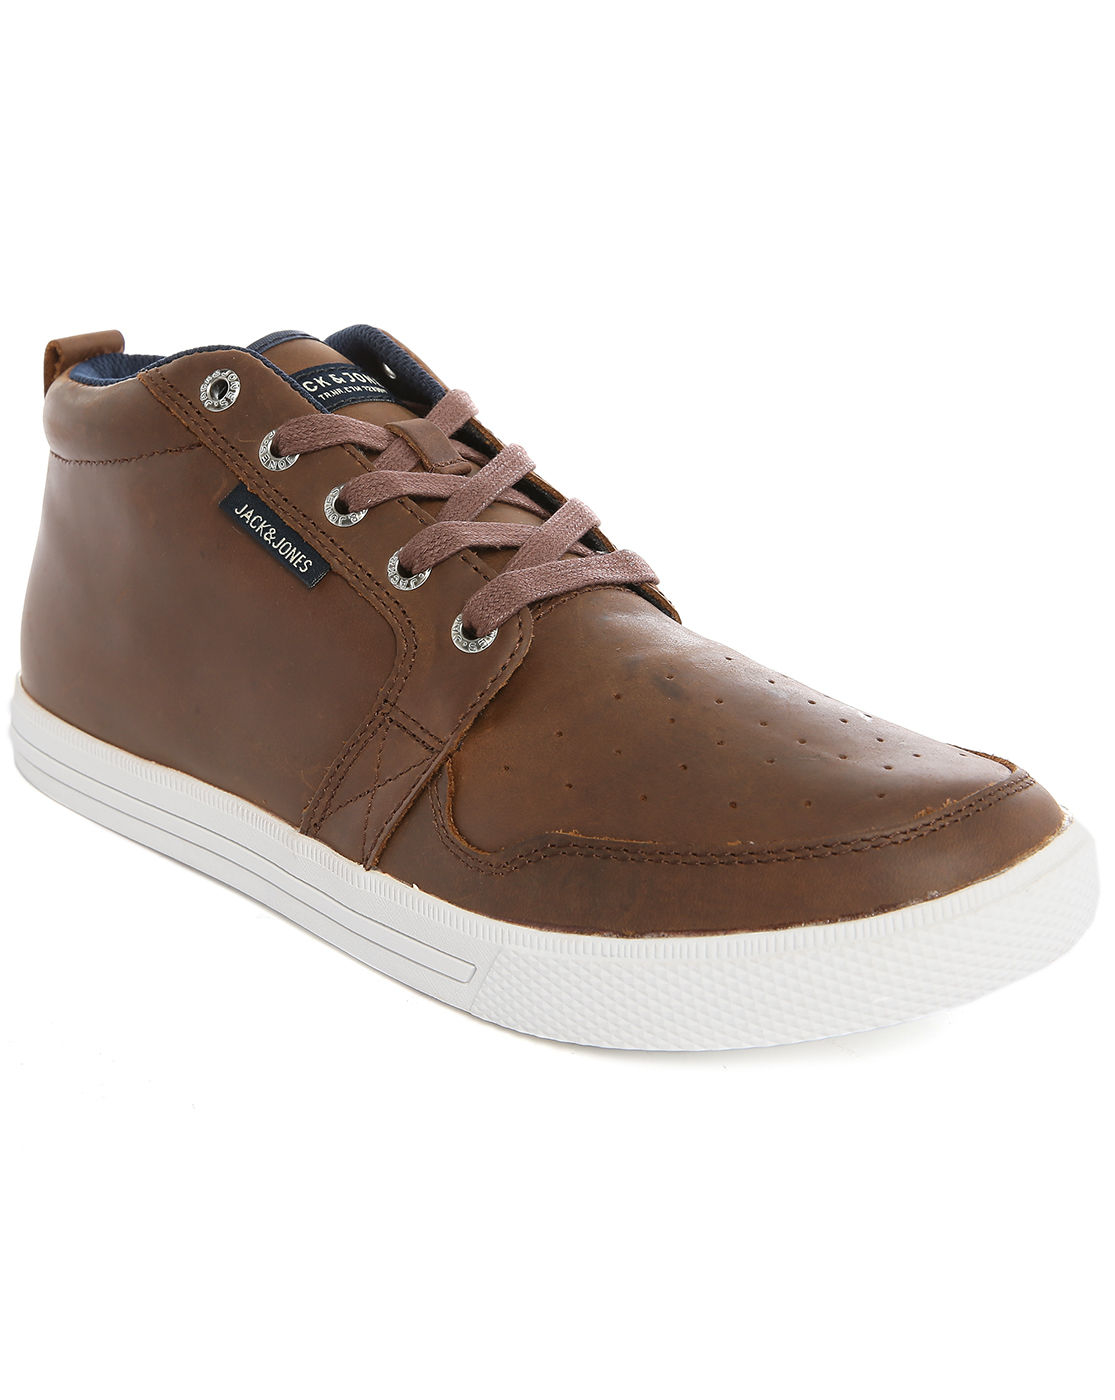 jack jones jjjuno dark brown leather sneakers in brown for men. Black Bedroom Furniture Sets. Home Design Ideas